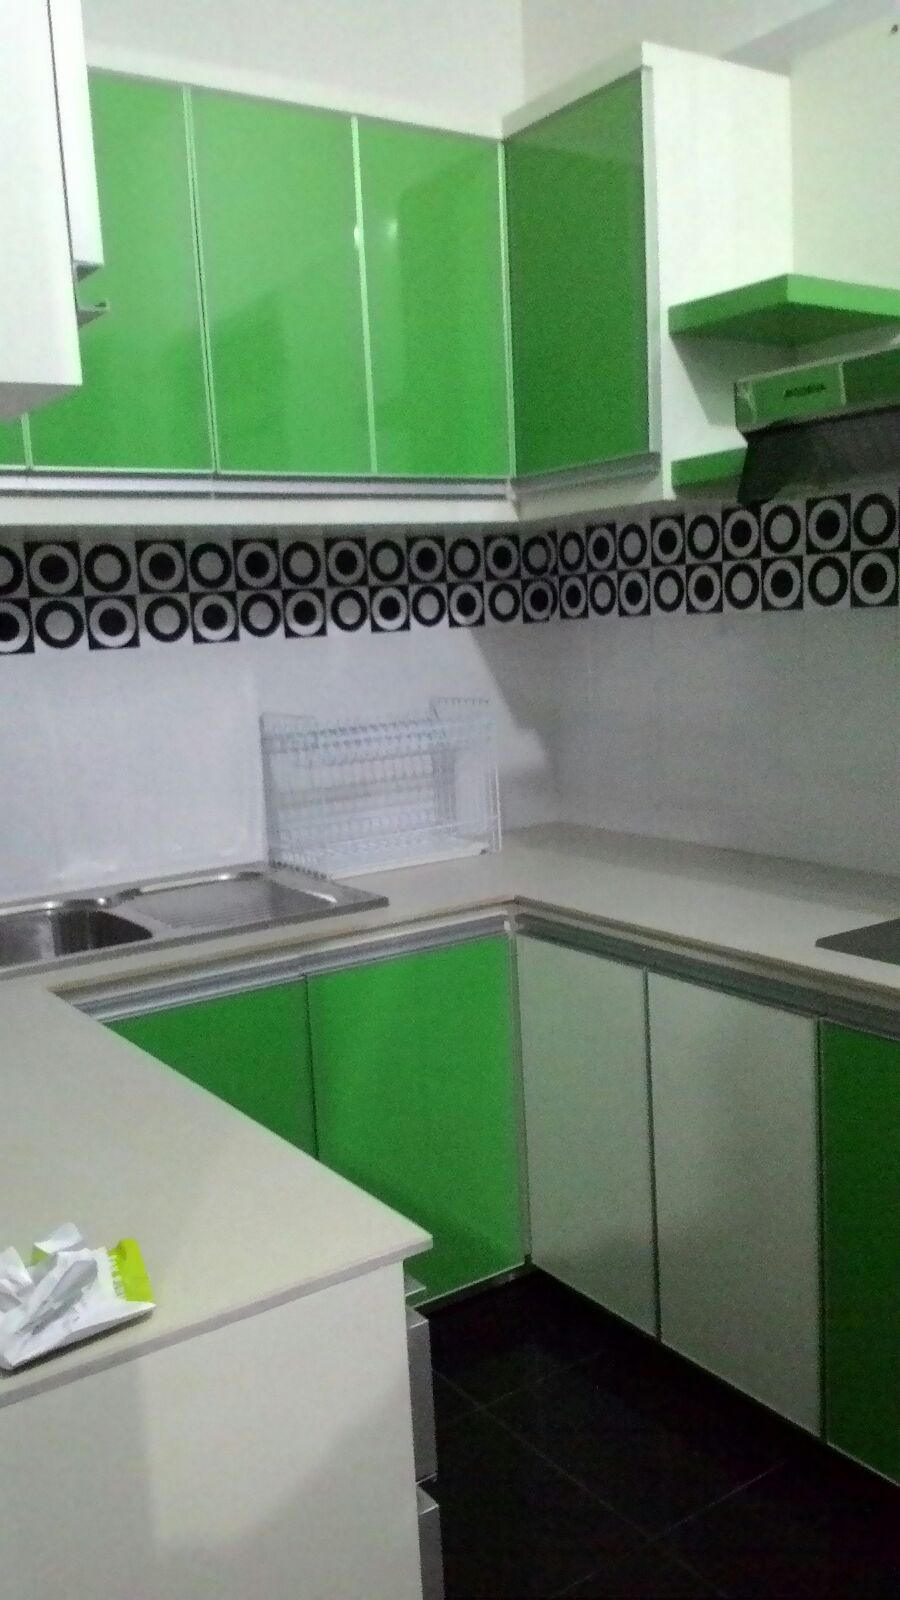 Design interior exterior architecture kitchen set for Kitchen set hijau